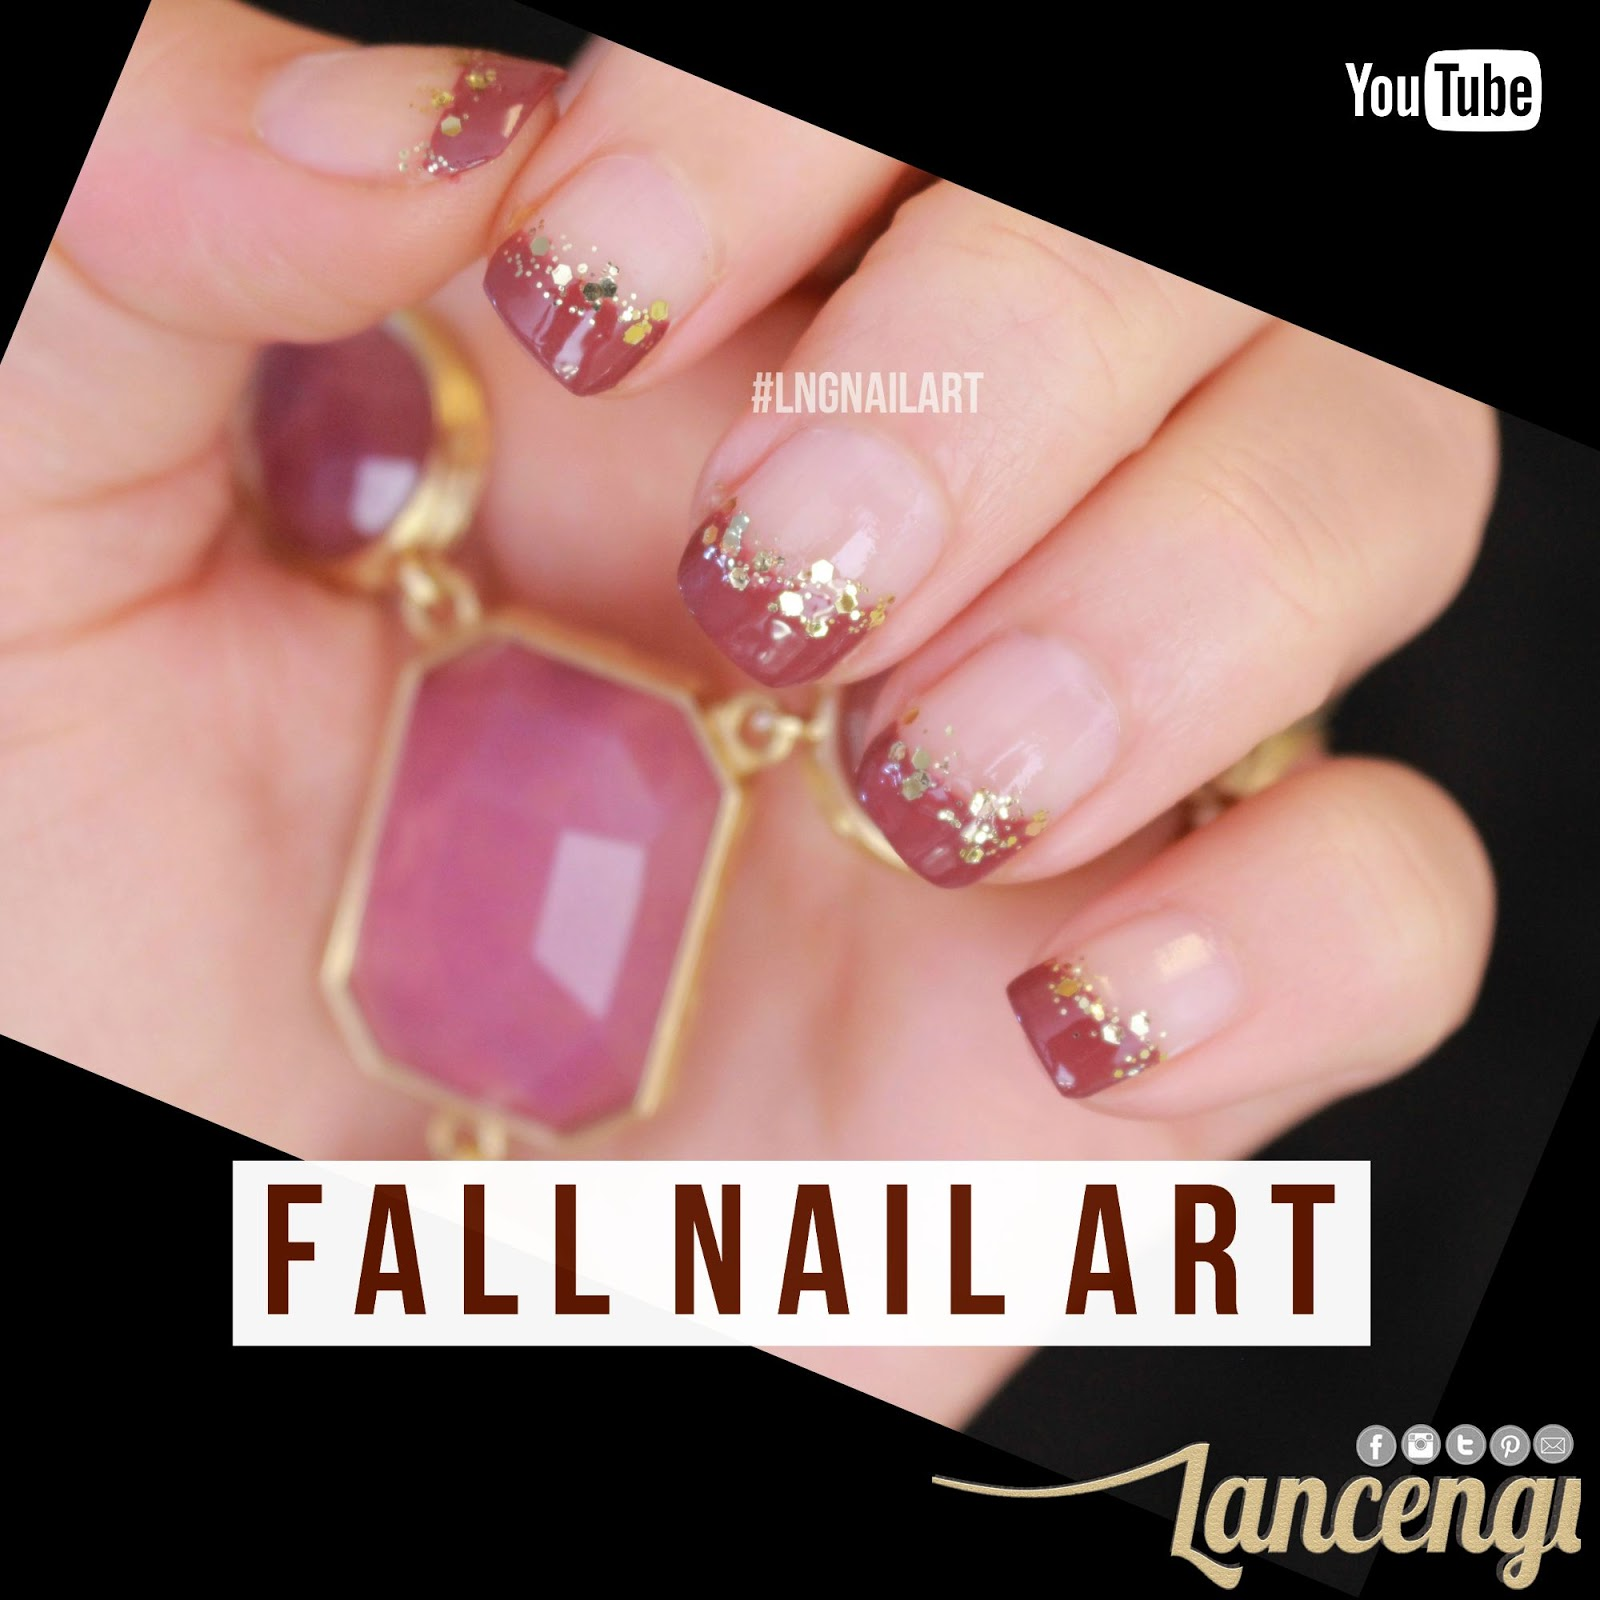 LancenGi: Easy Nail Art - Transitional Fall French Manicure + No Tools